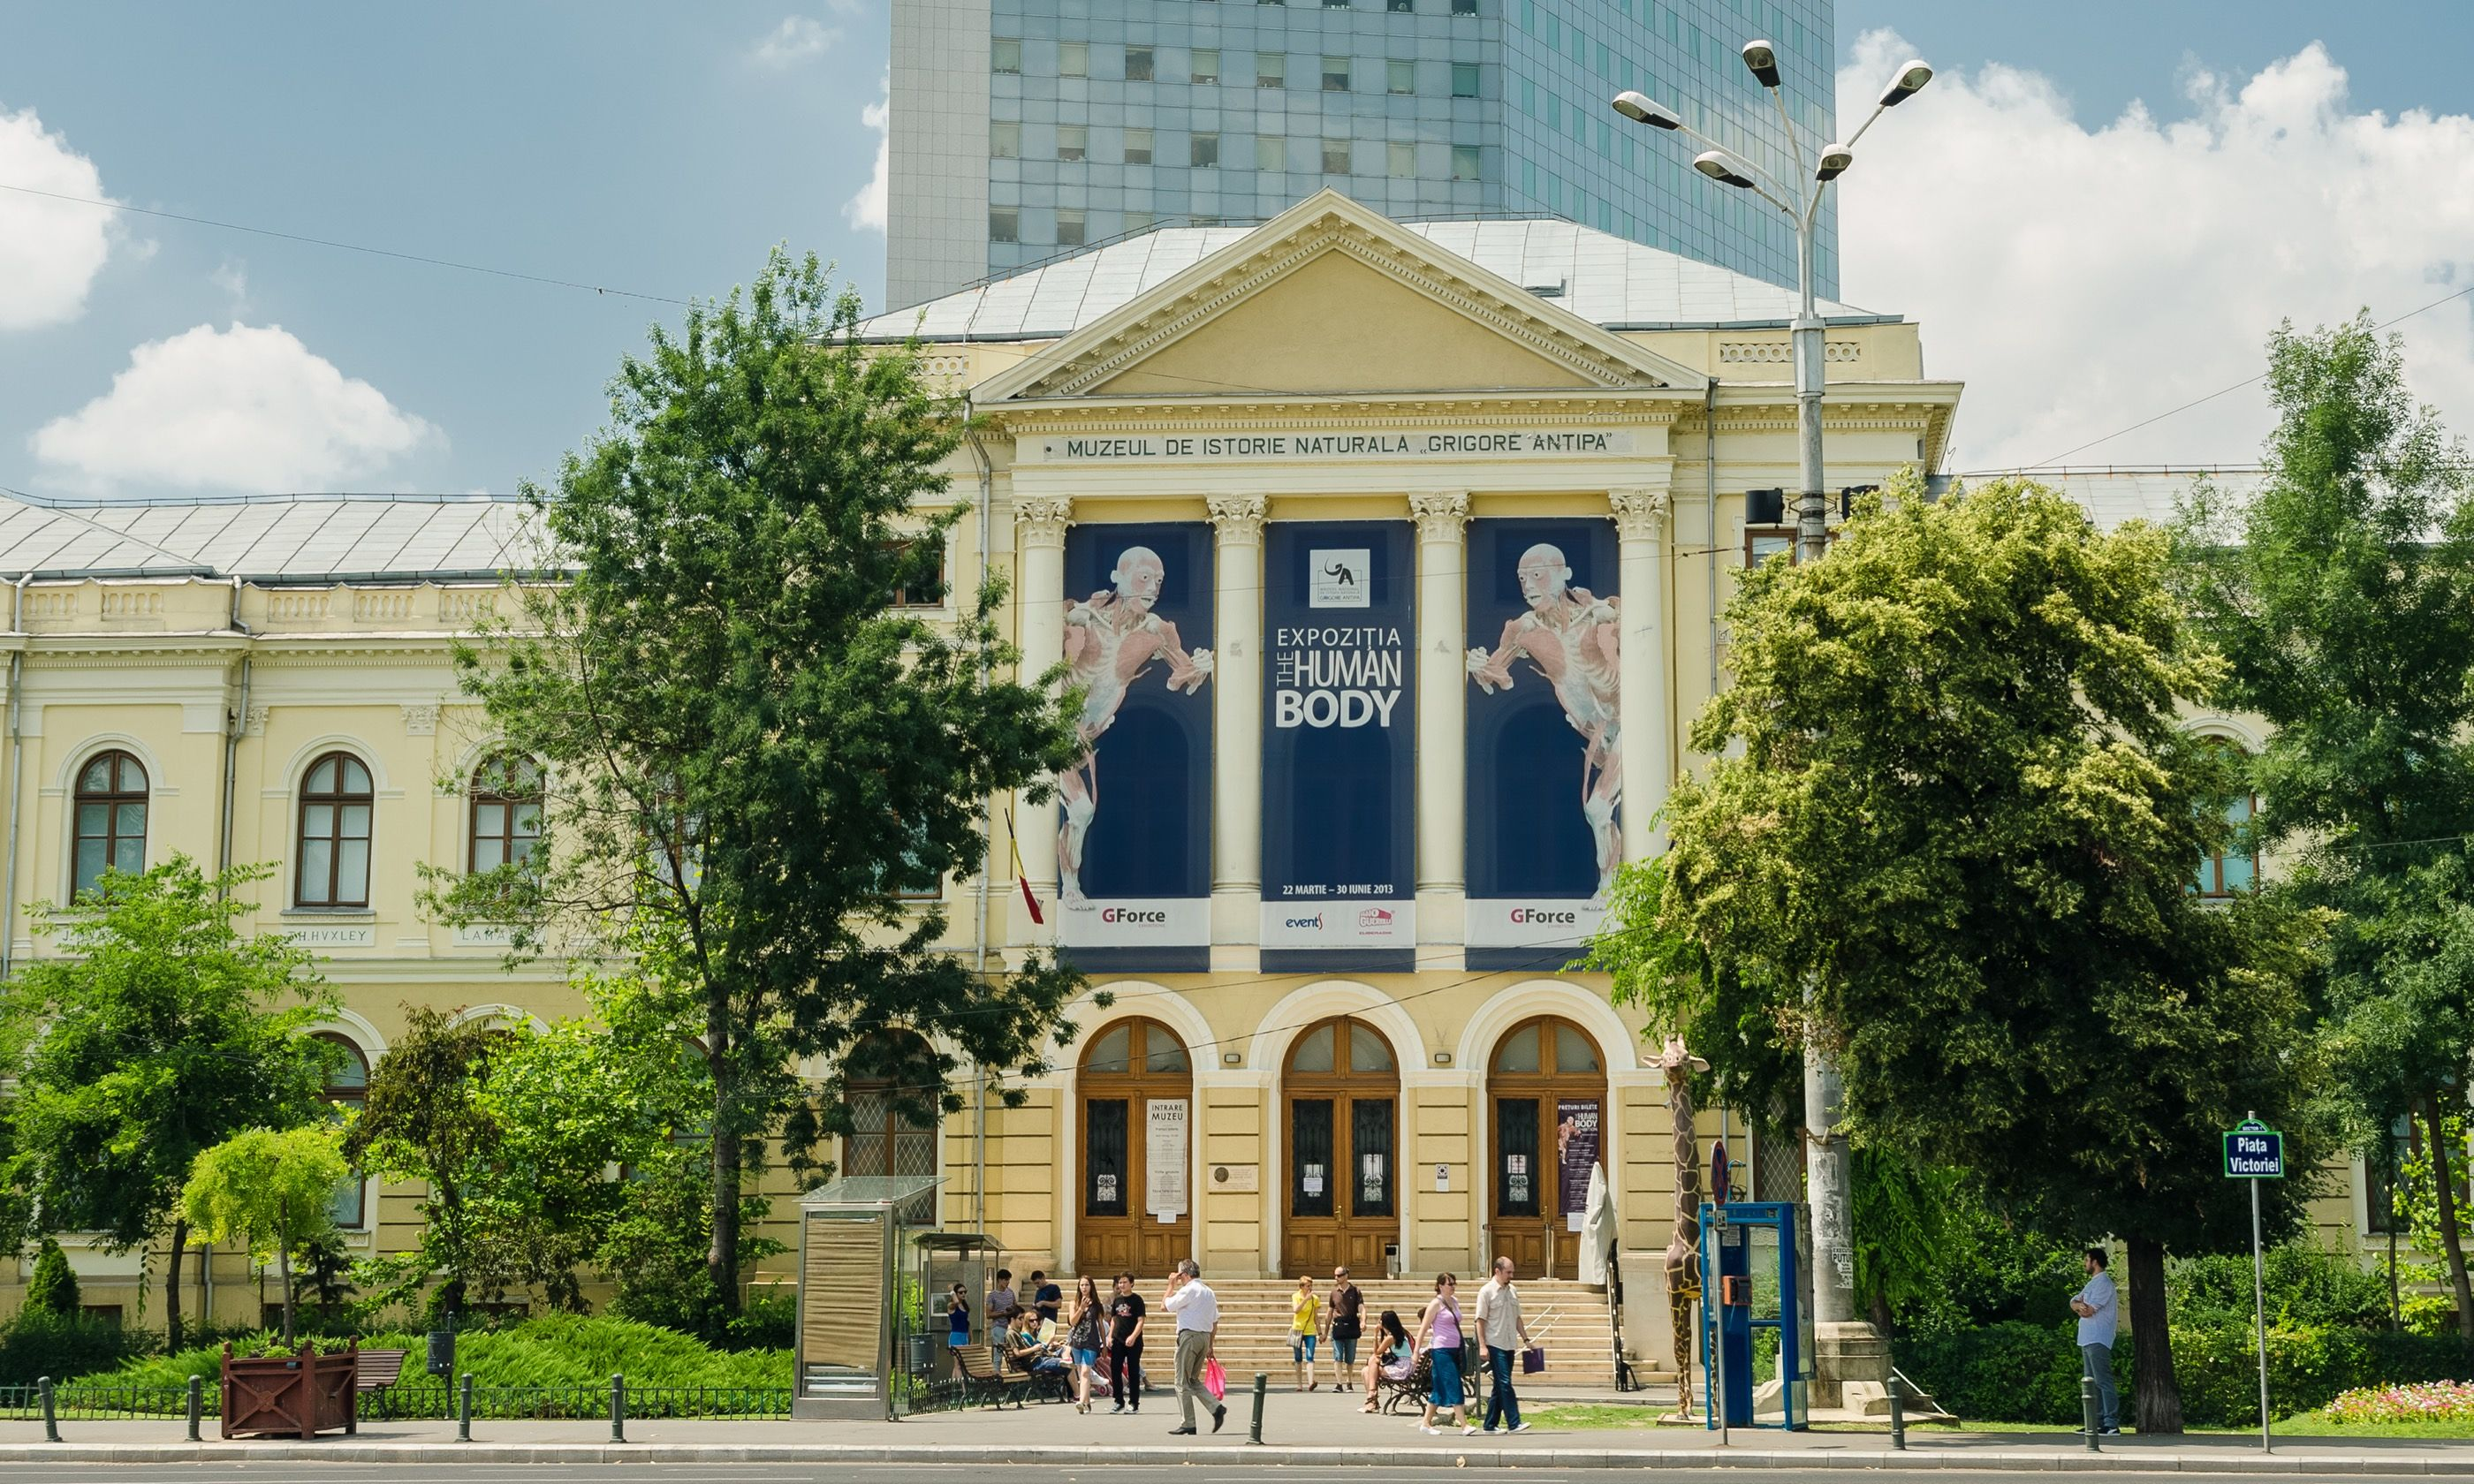 Bucharest Museum of Natural History (Shutterstock.com)